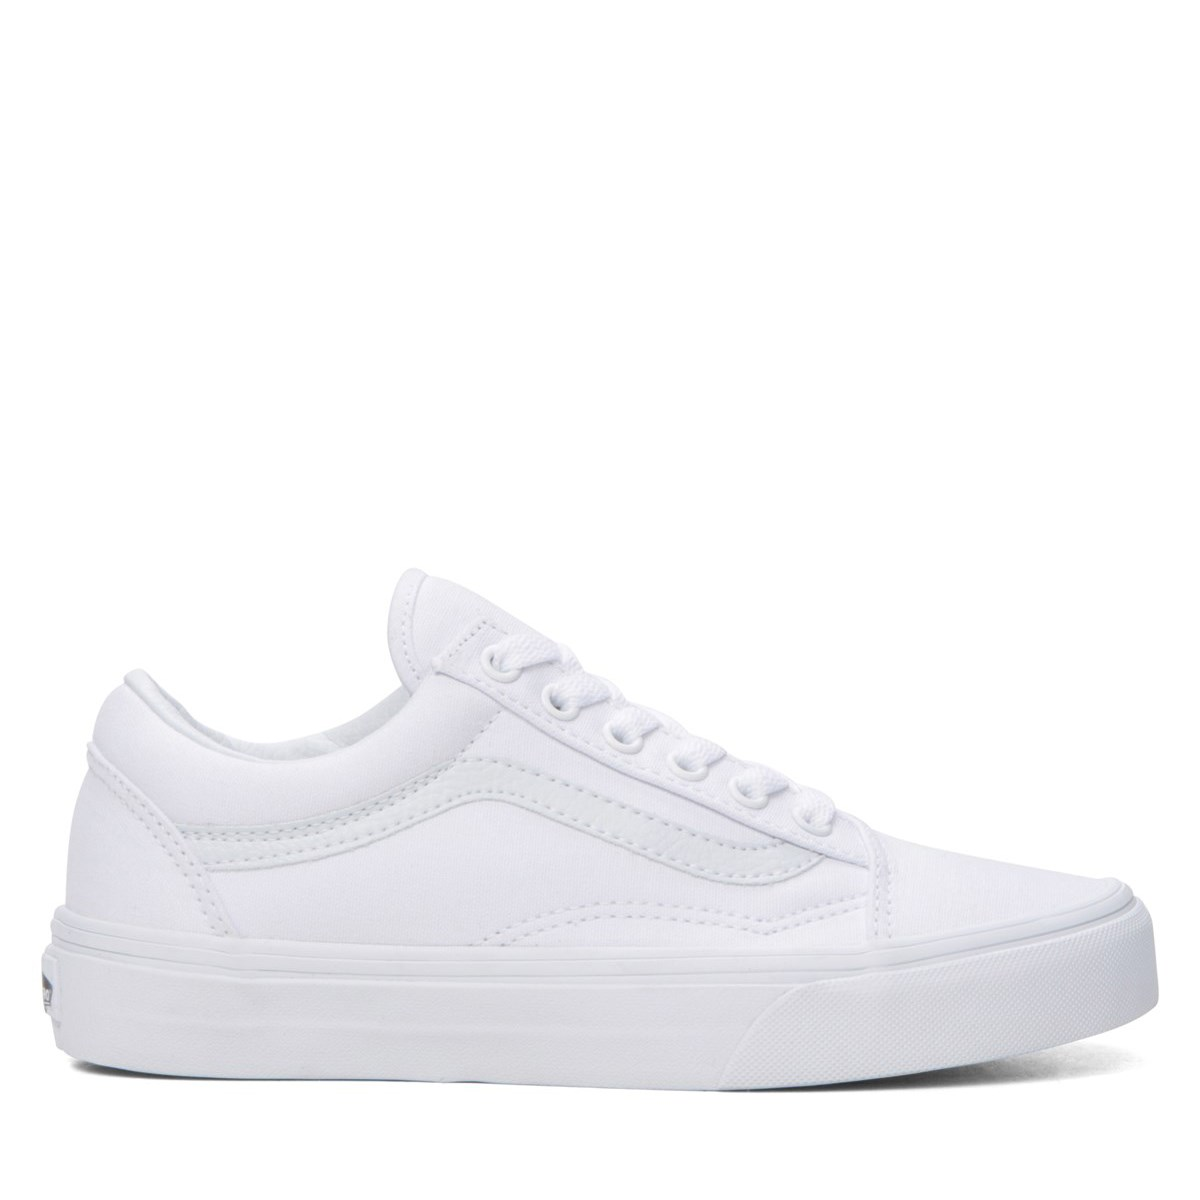 Old Skool True Sneakers in White